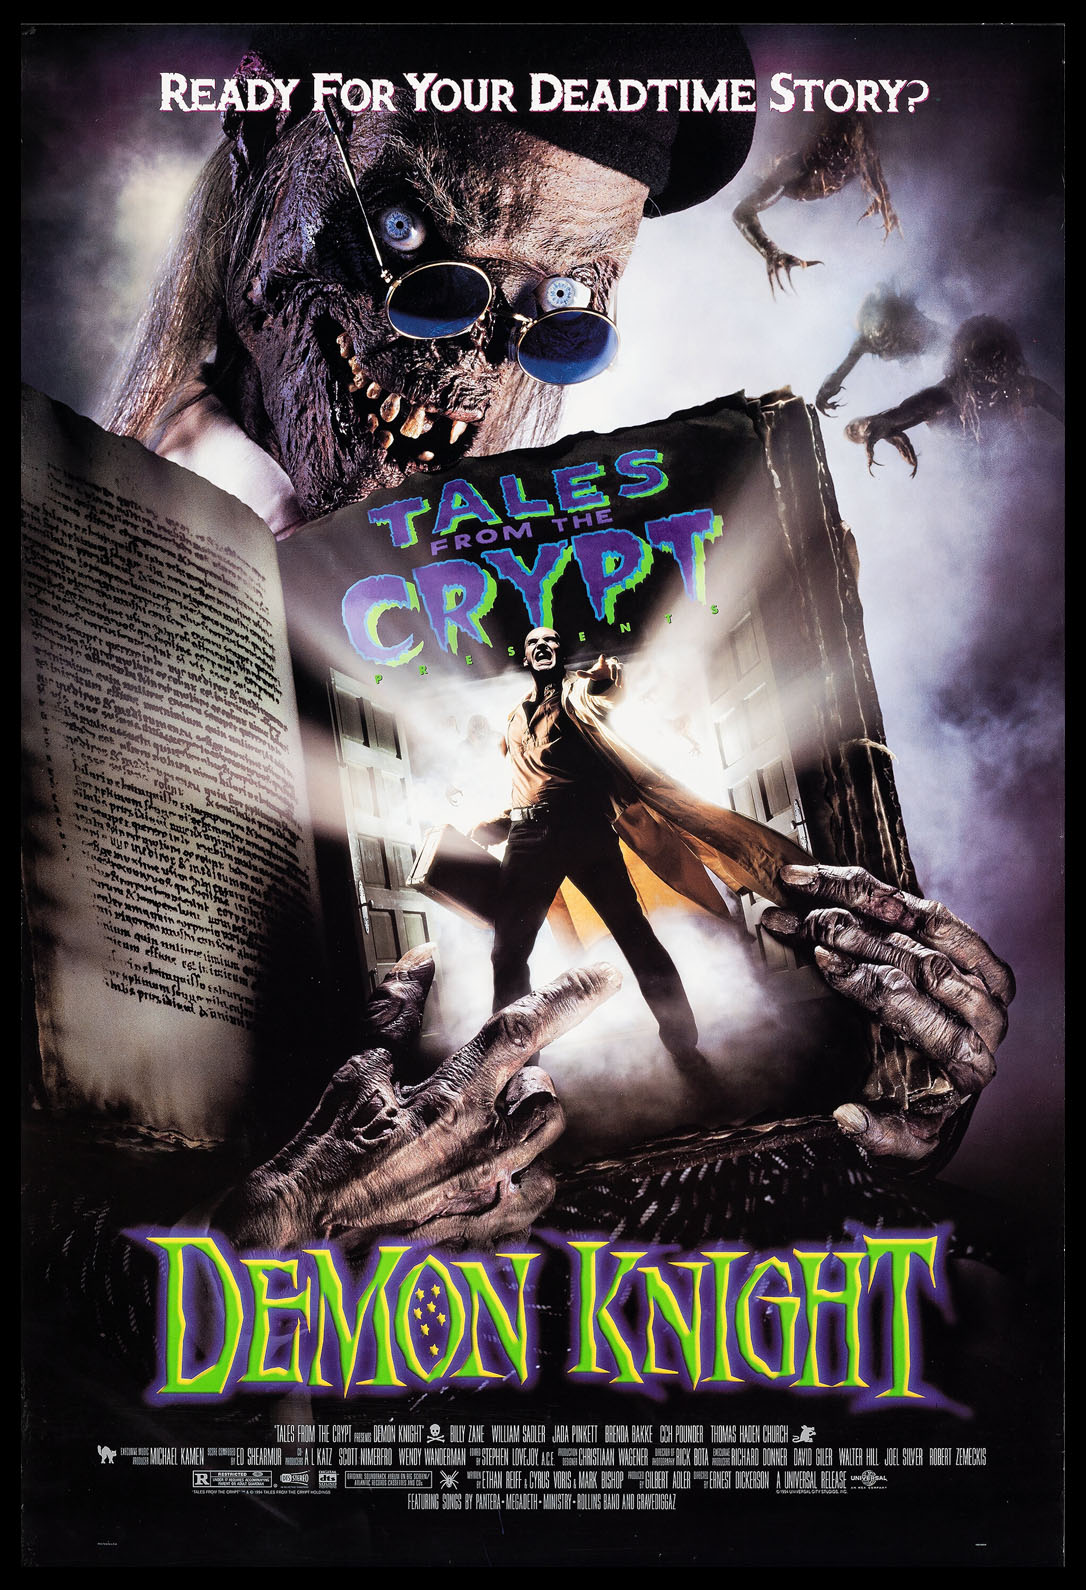 DEMON KNIGHT: TALES FROM THE CRYPT @ FilmPosters.com